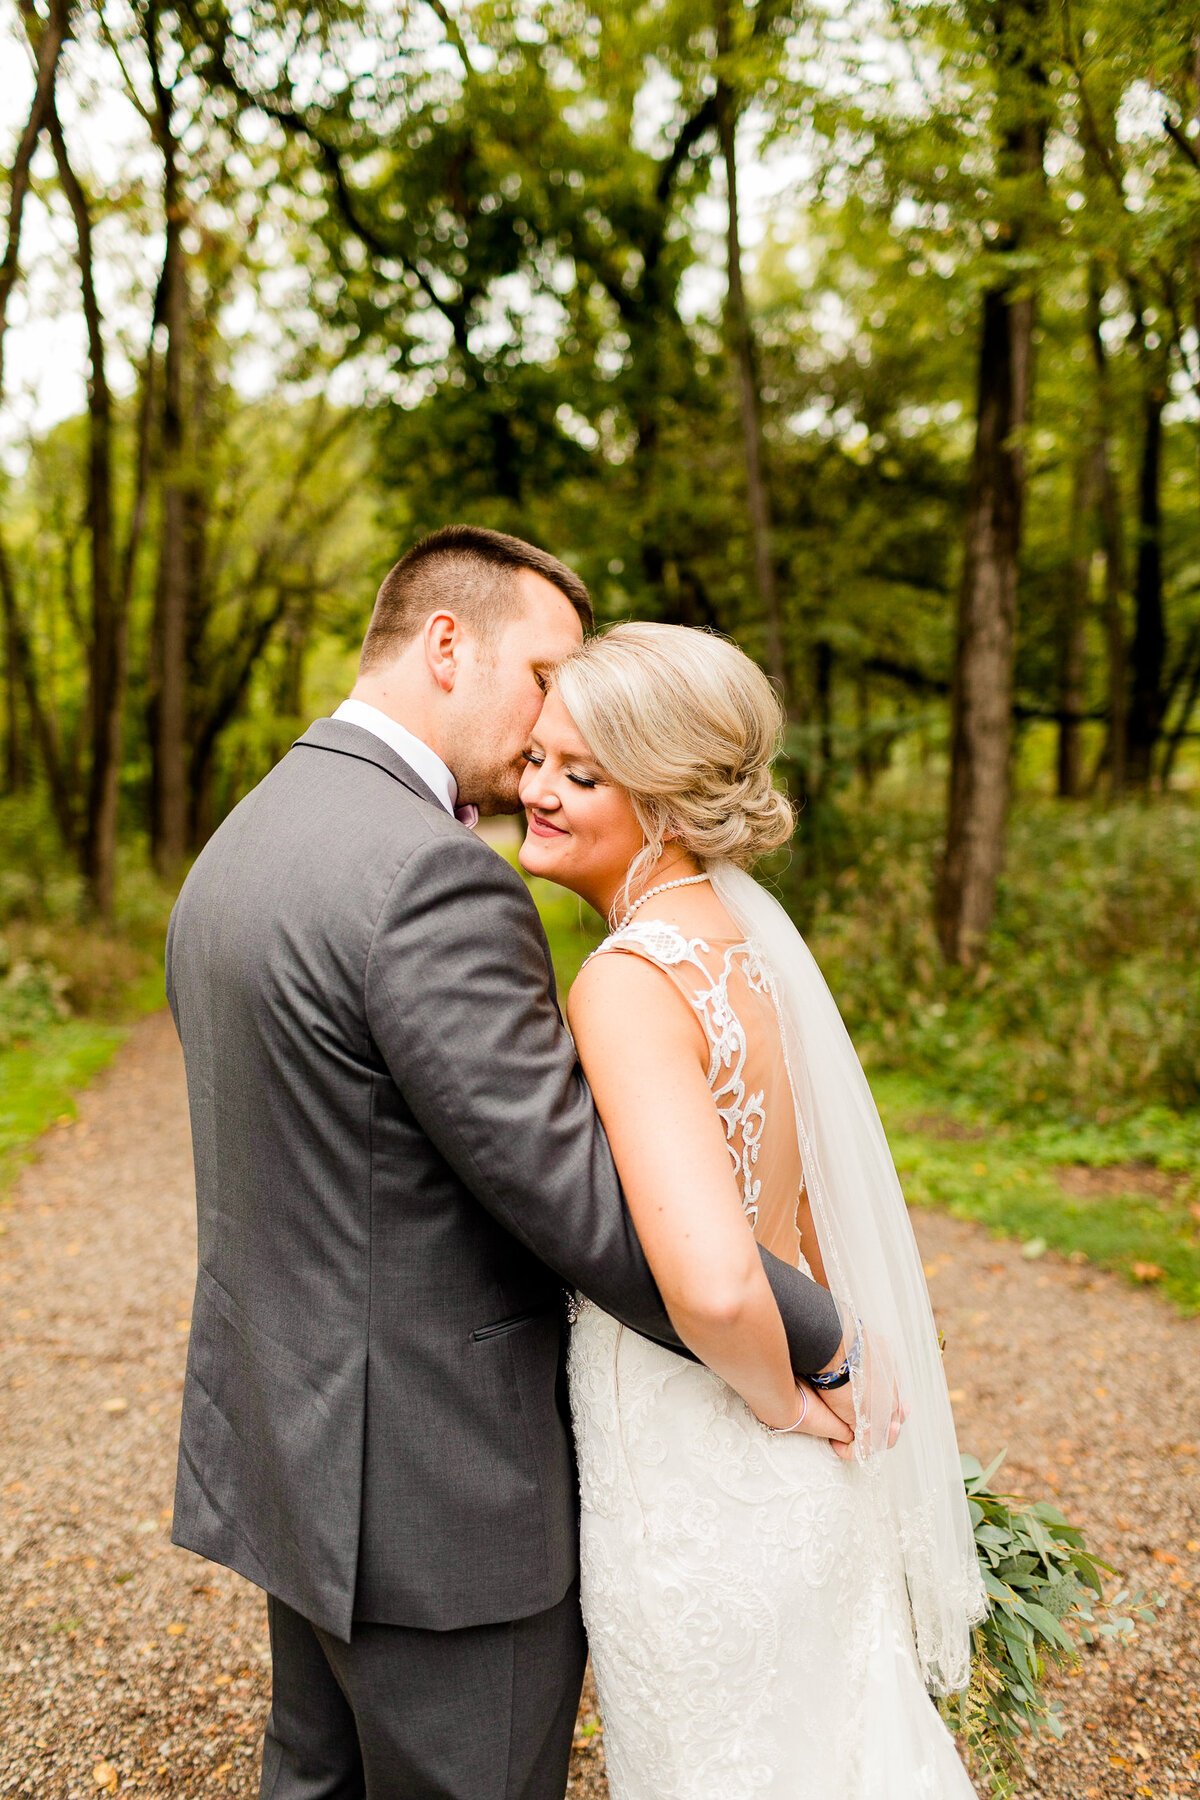 Caitlin and Luke Photography Wedding Engagement Luxury Illinois Destination Colorful Bright Joyful Cheerful Photographer 209